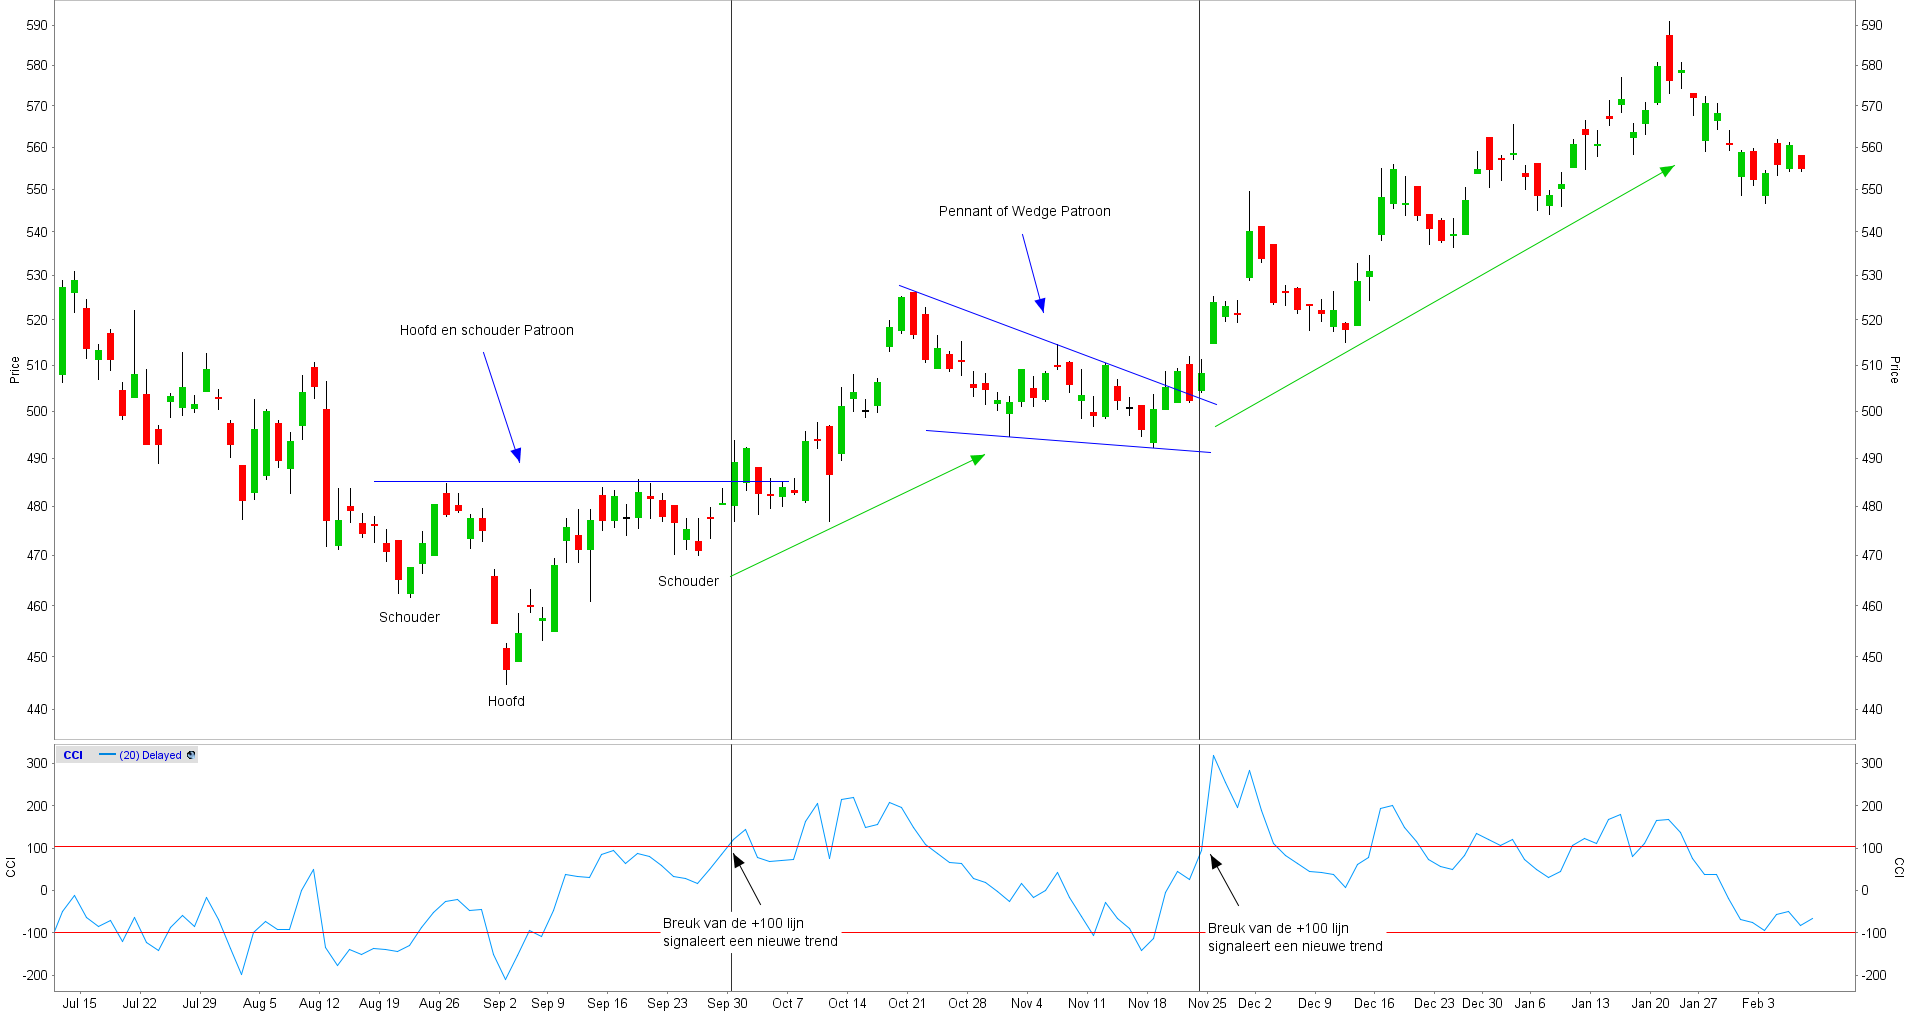 Commodity channel index patronen